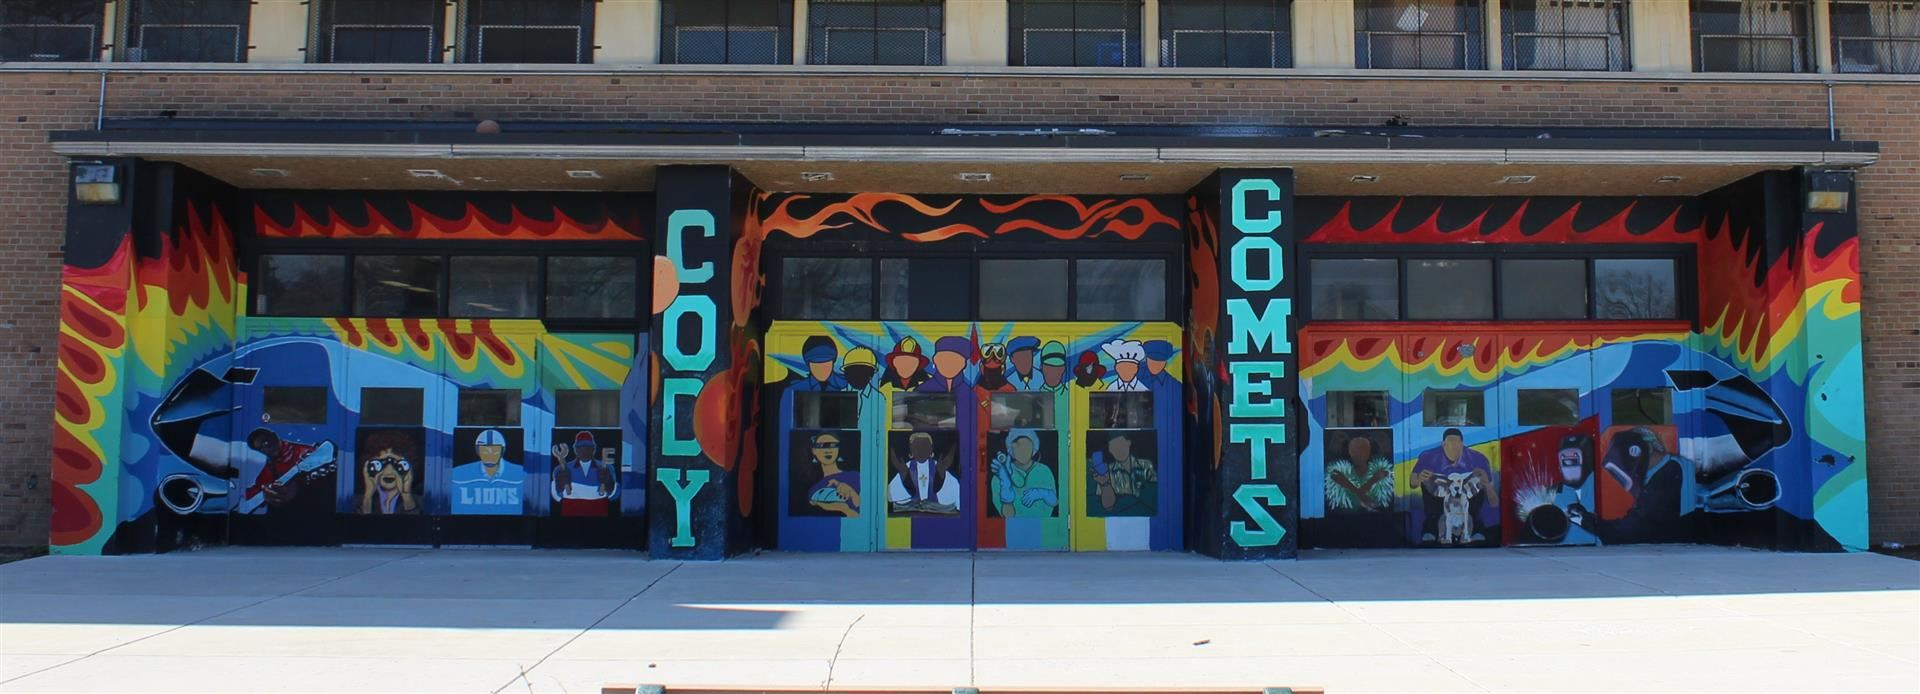 Cody Comets mural display